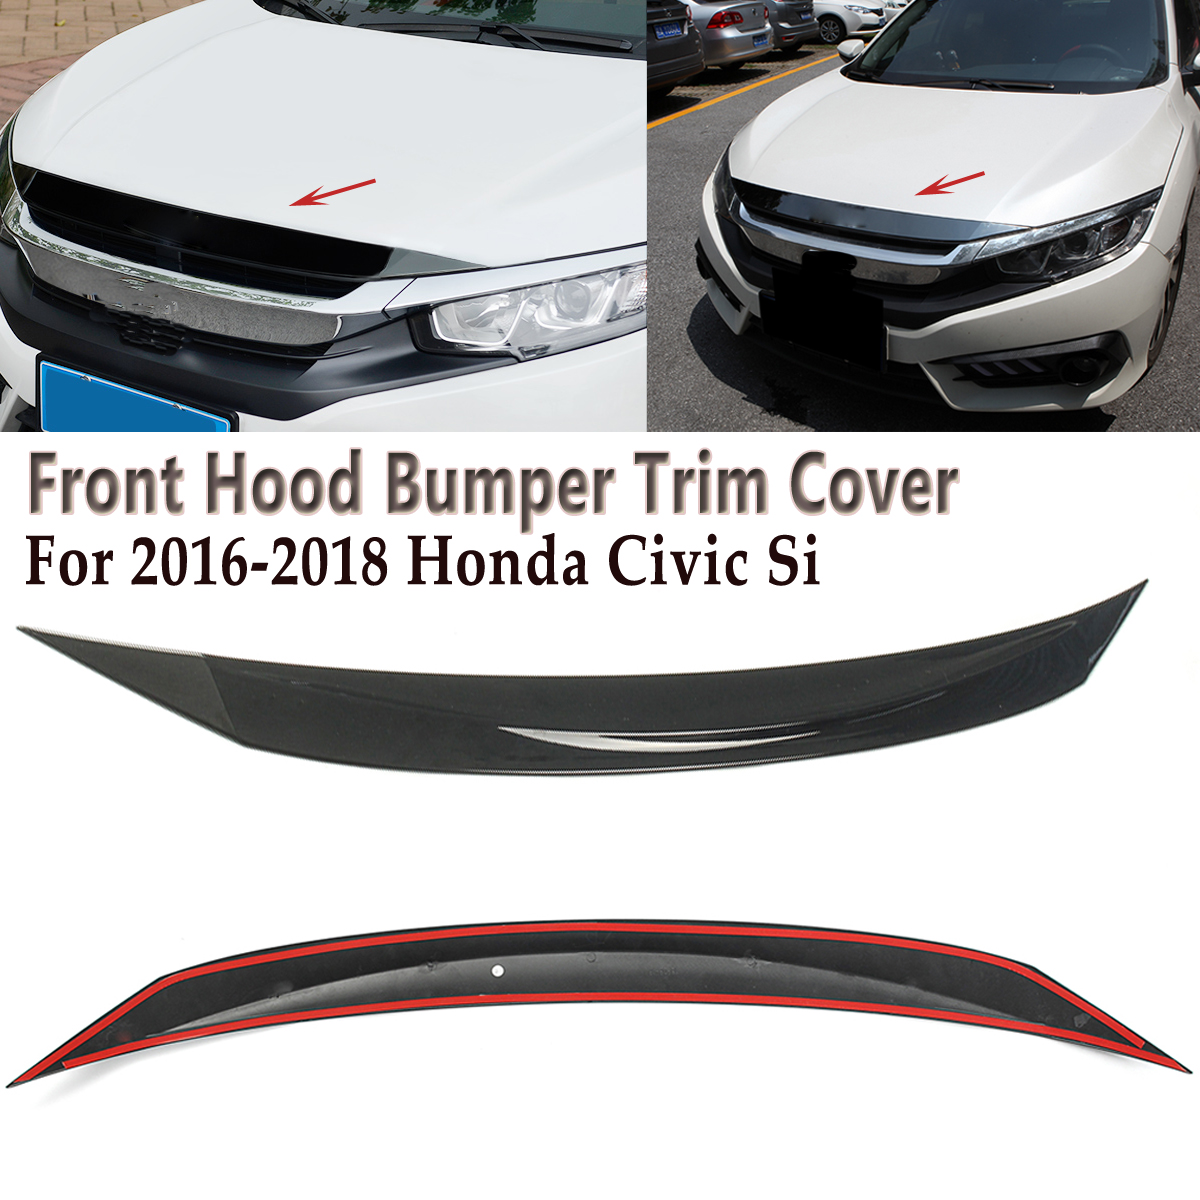 Front Hood Bumper Protector Trim Cover Fits For 2016-2018 Honda Civic All Model